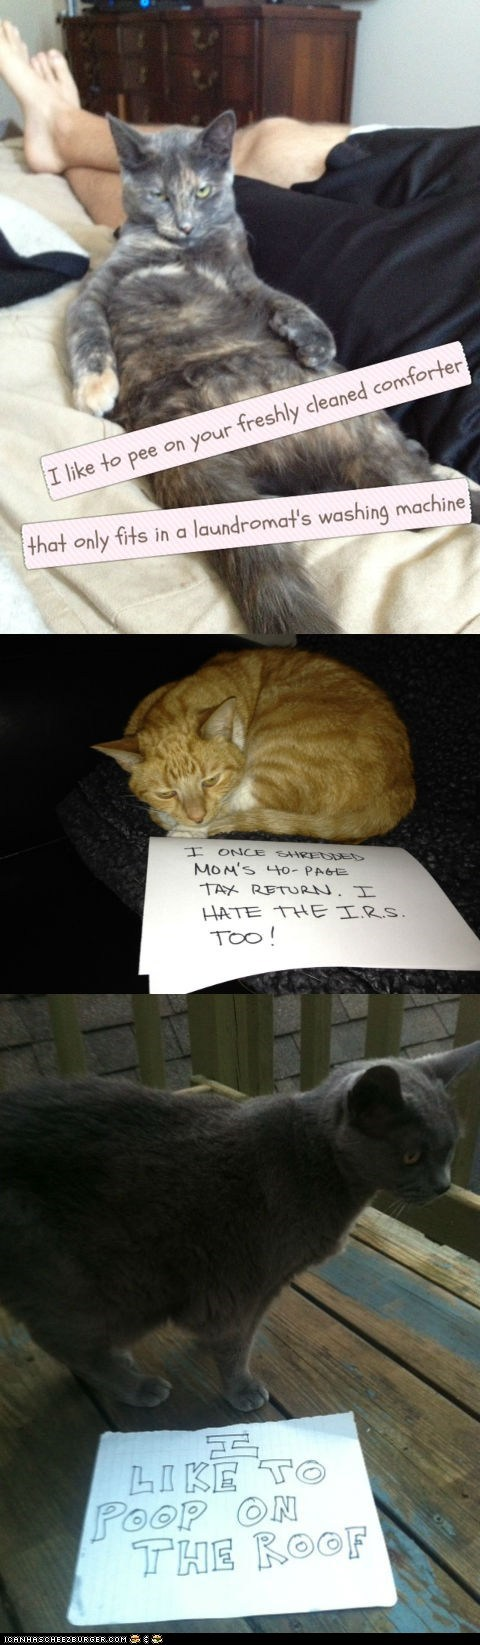 cat shaming Cats destruction dog shaming guilty shame shaming tumblrs